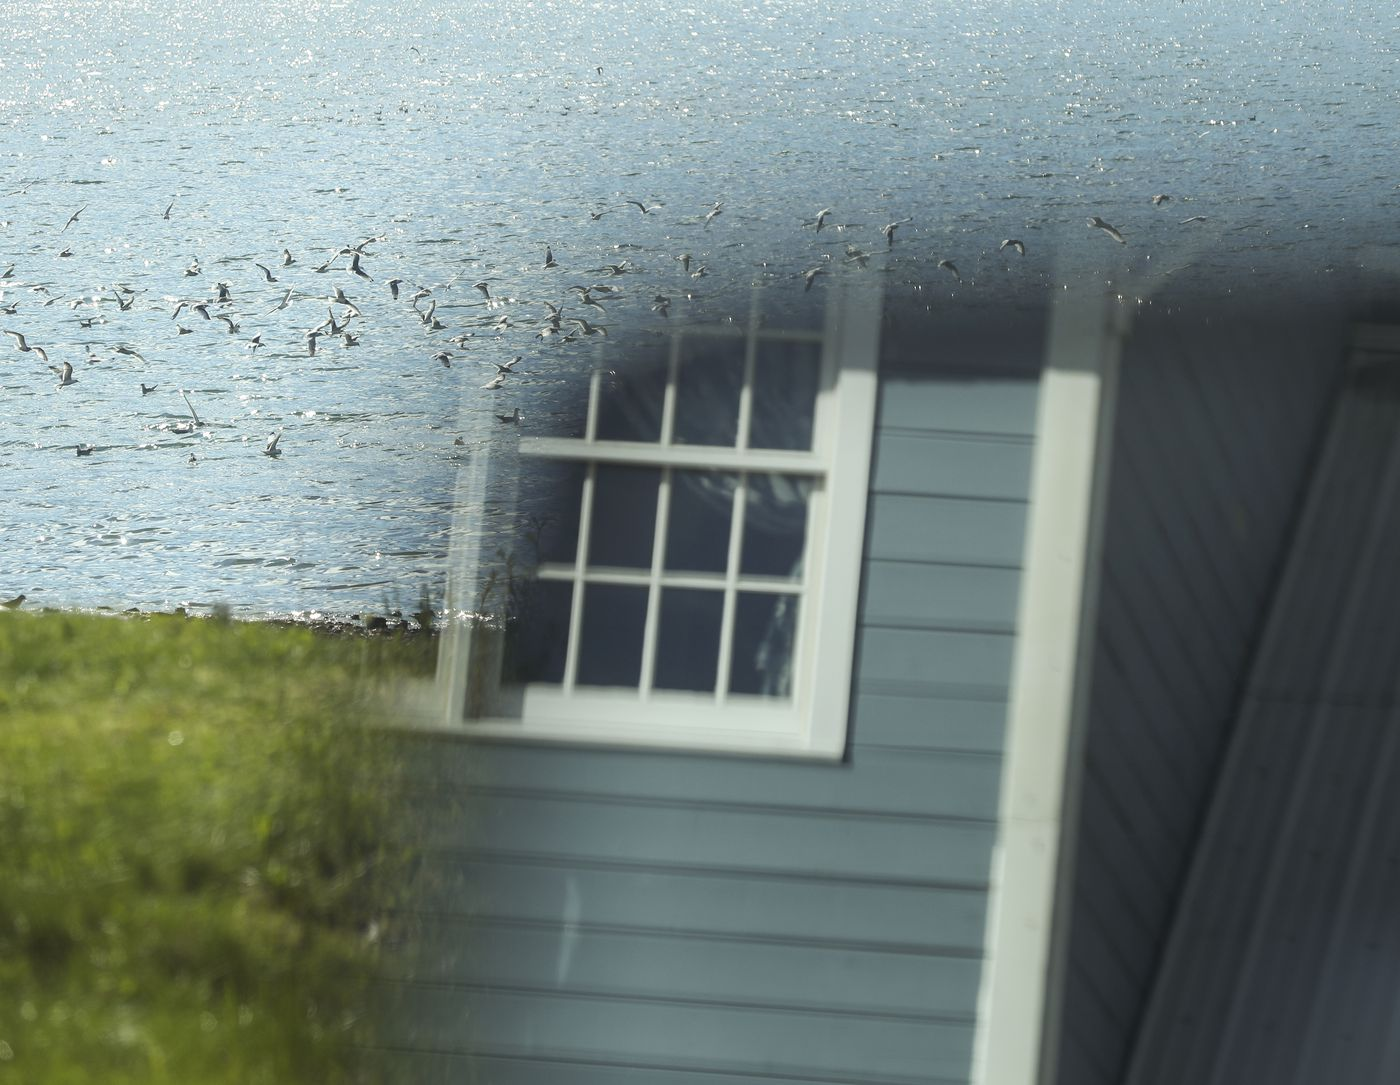 Seagulls flock Orca Inlet in Cordova as Orca Adventure Lodge is reflected in a car's side mirror on Saturday, May 22, 2021. (Emily Mesner / ADN)